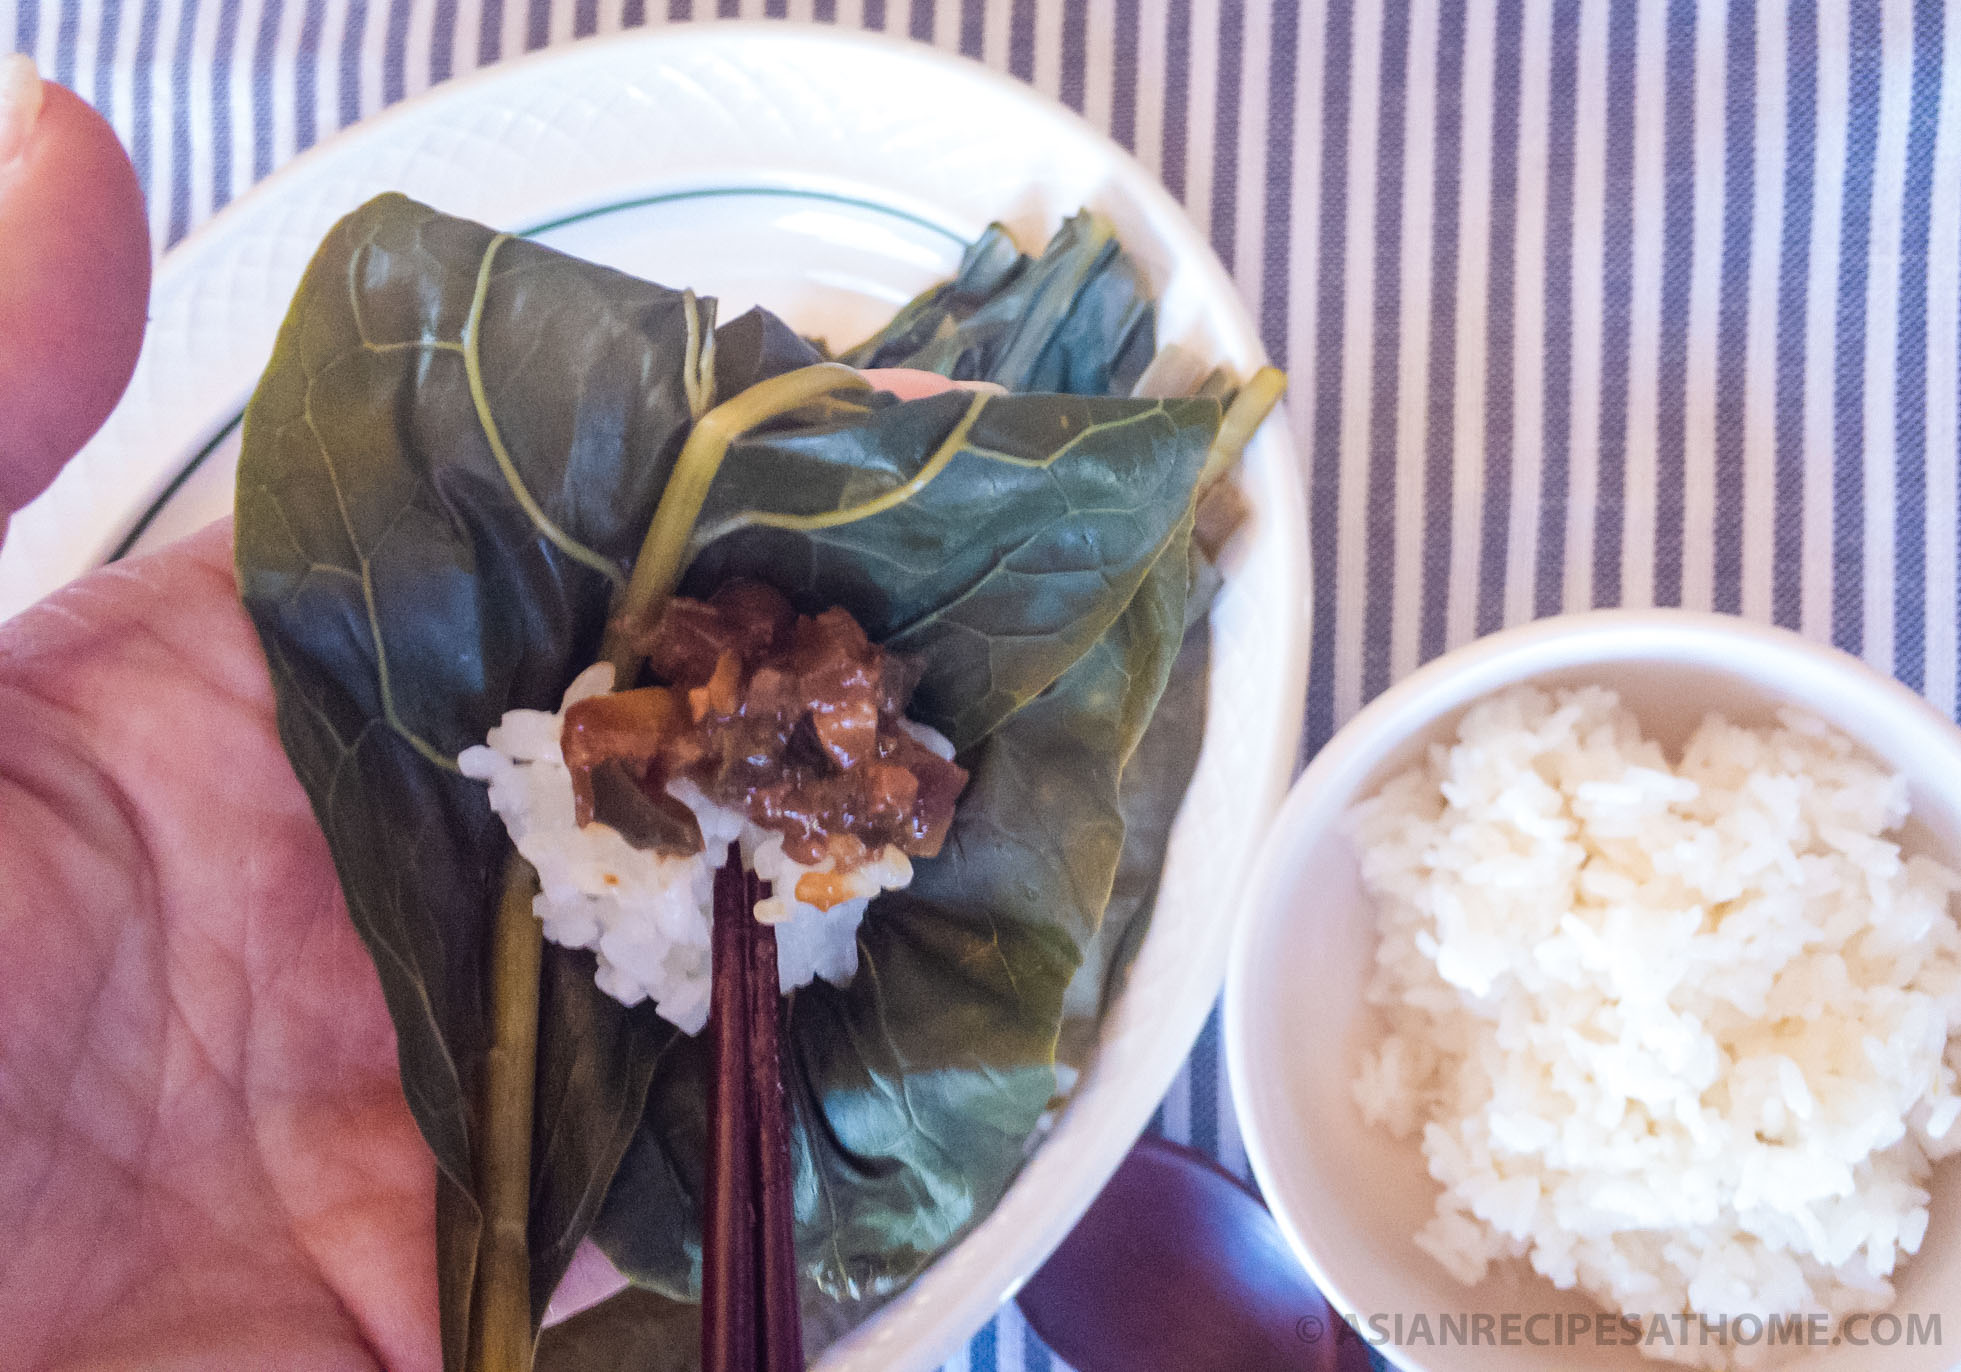 Boiled poke salad (sallet) leaves are used as the wrap for the rice and the savory, salty Korean fermented soybean paste sauce.